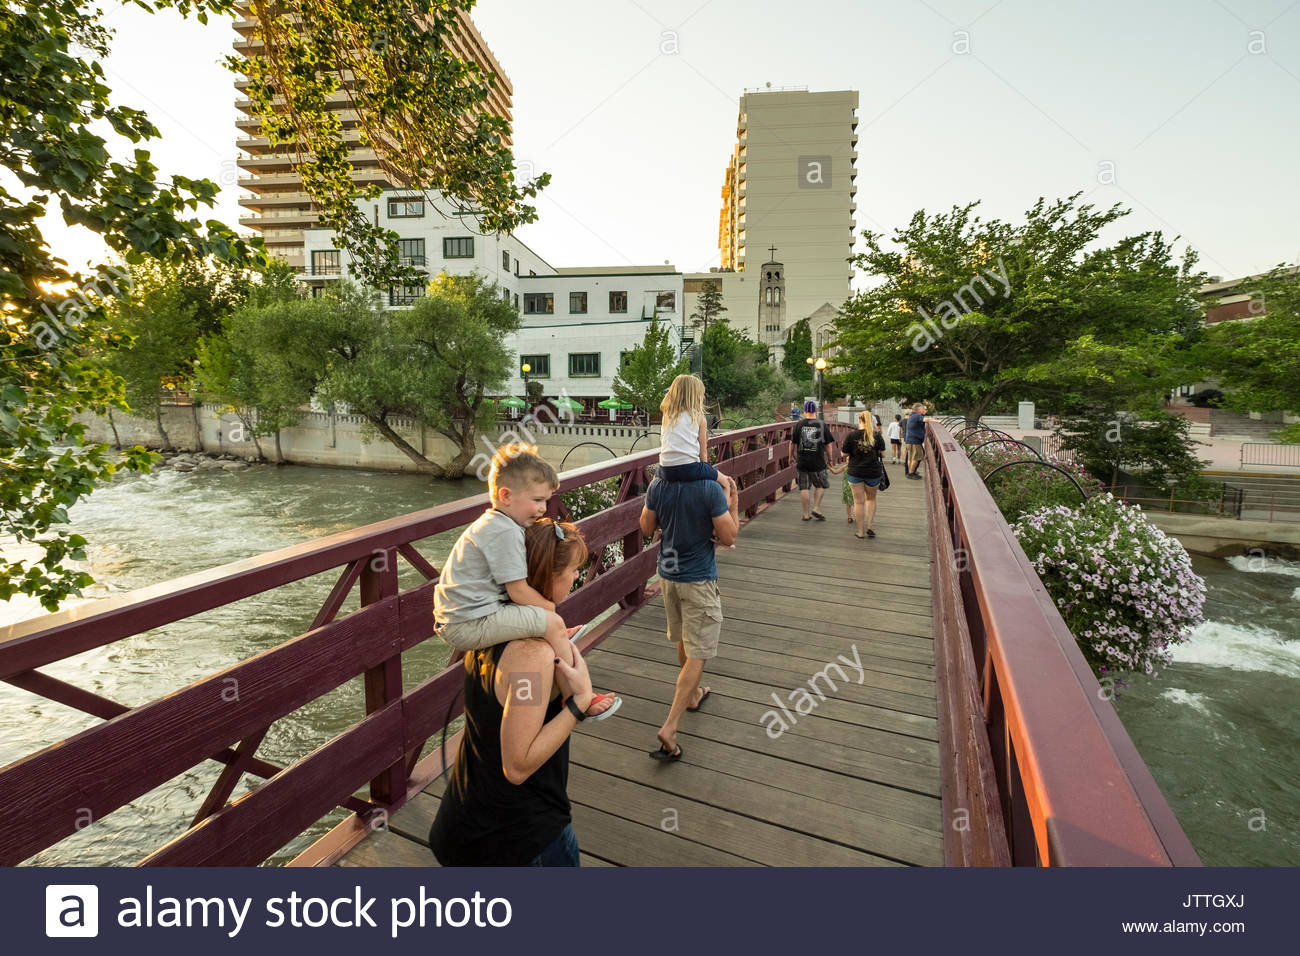 People walking on pedestrian bridge spanning the Truckee River near Wingfield Park, Reno, Washoe County, Nevada, USA - Stock Image